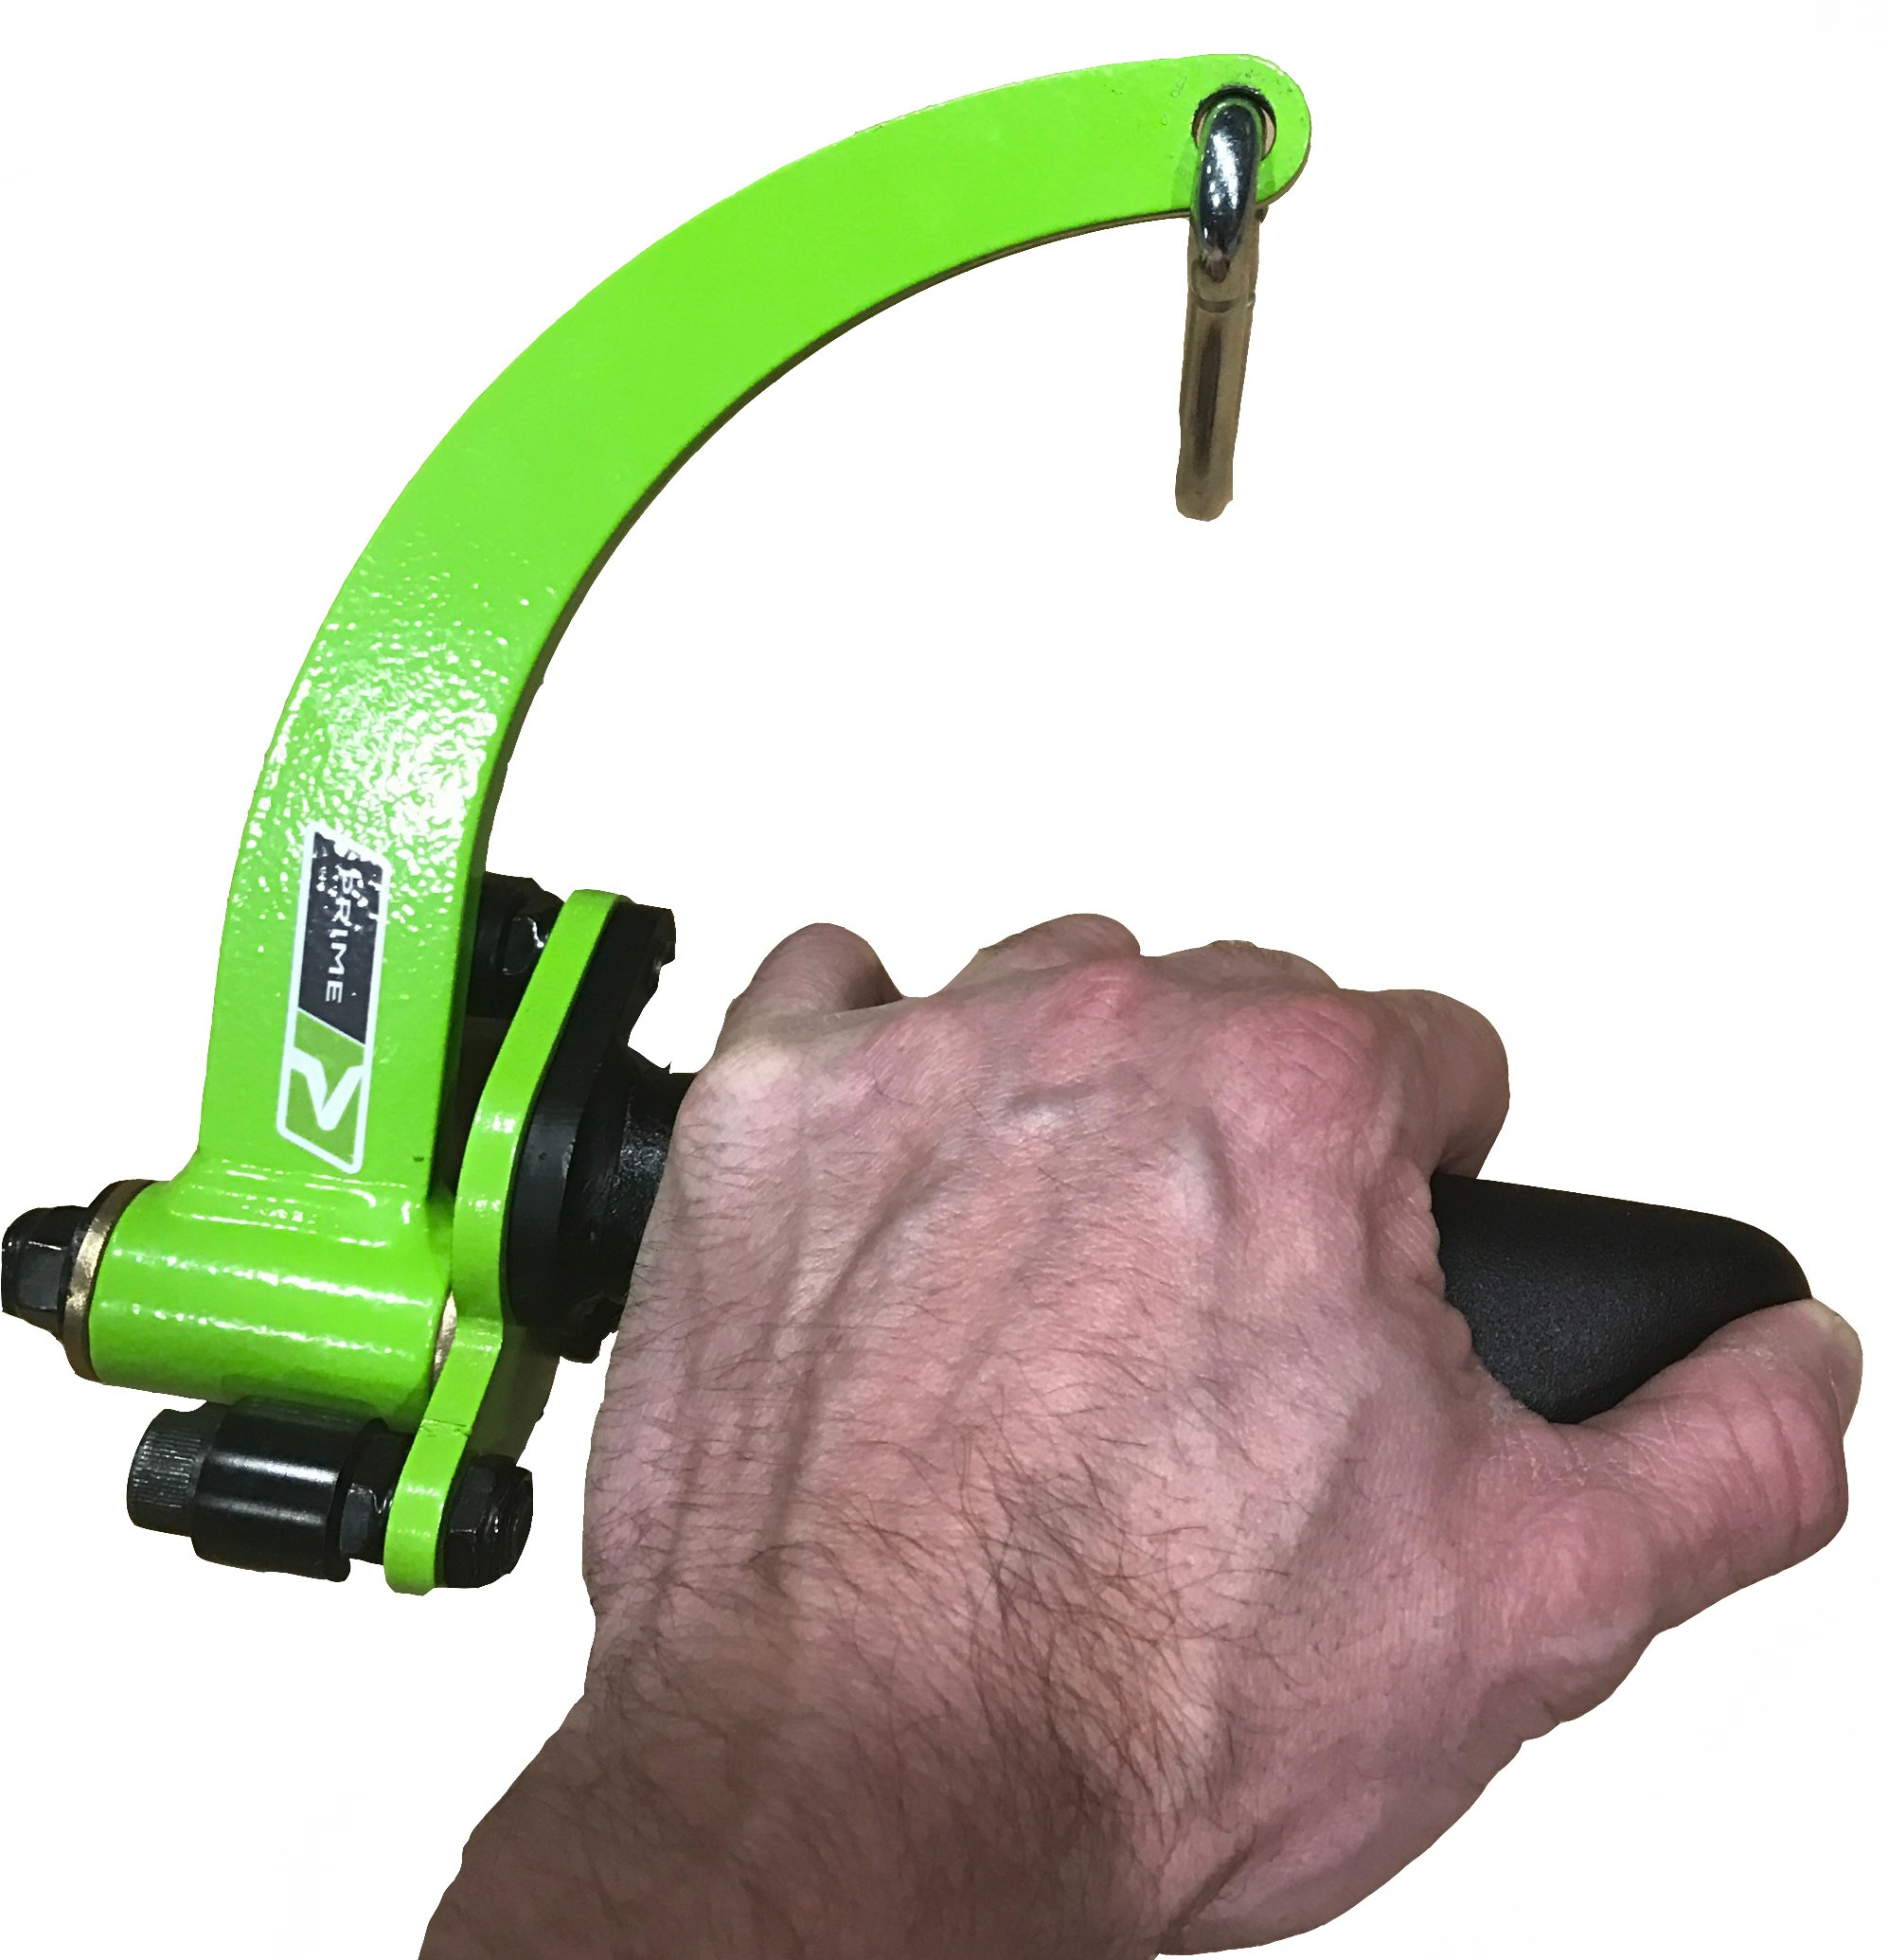 PRIME RO-T8 Handles (PRIME Green) by PRIME Fitness (Image #1)